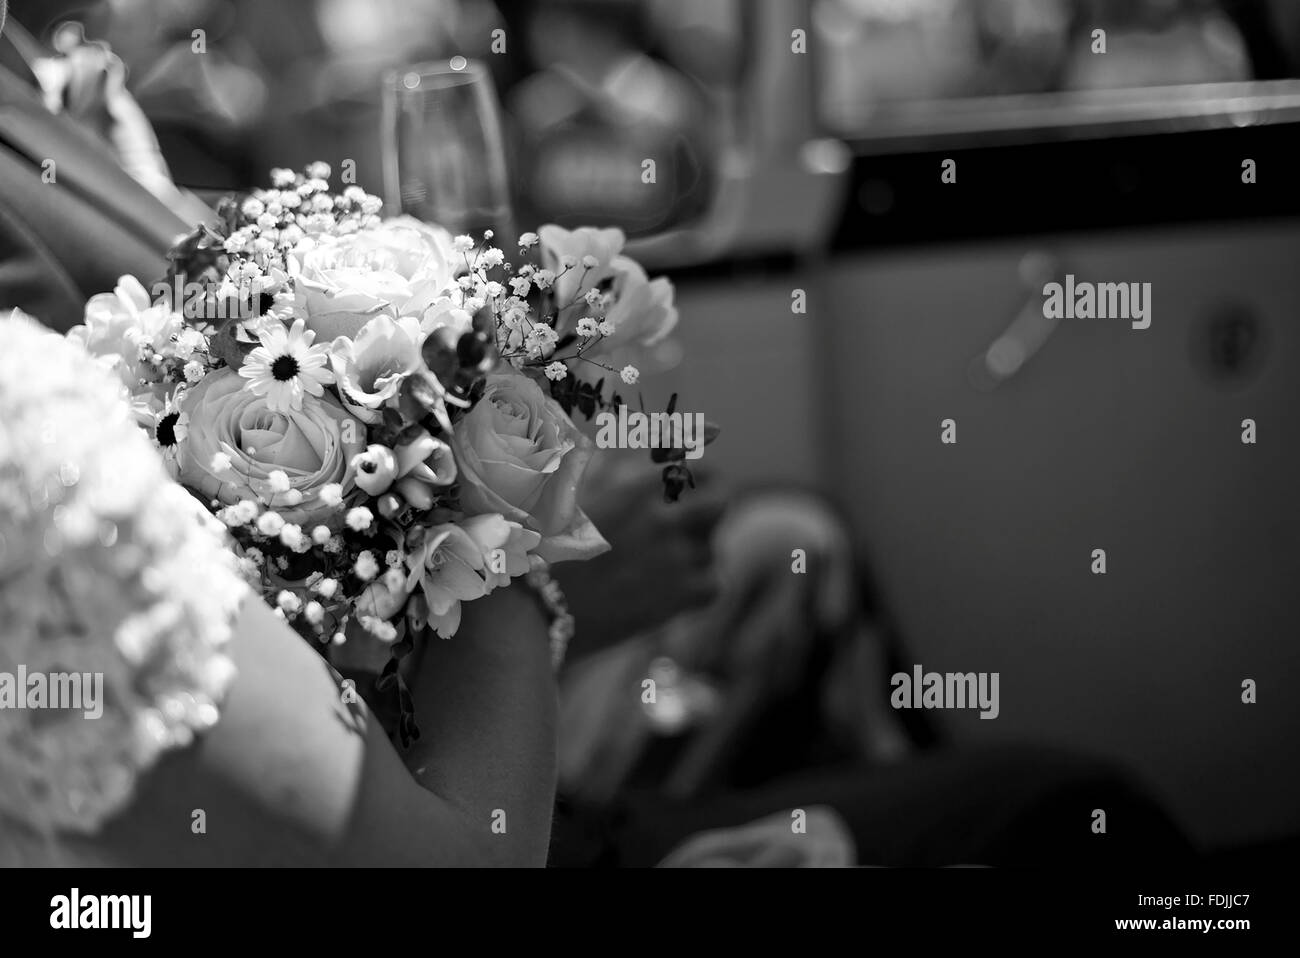 Wedding Day Detail - Stock Image